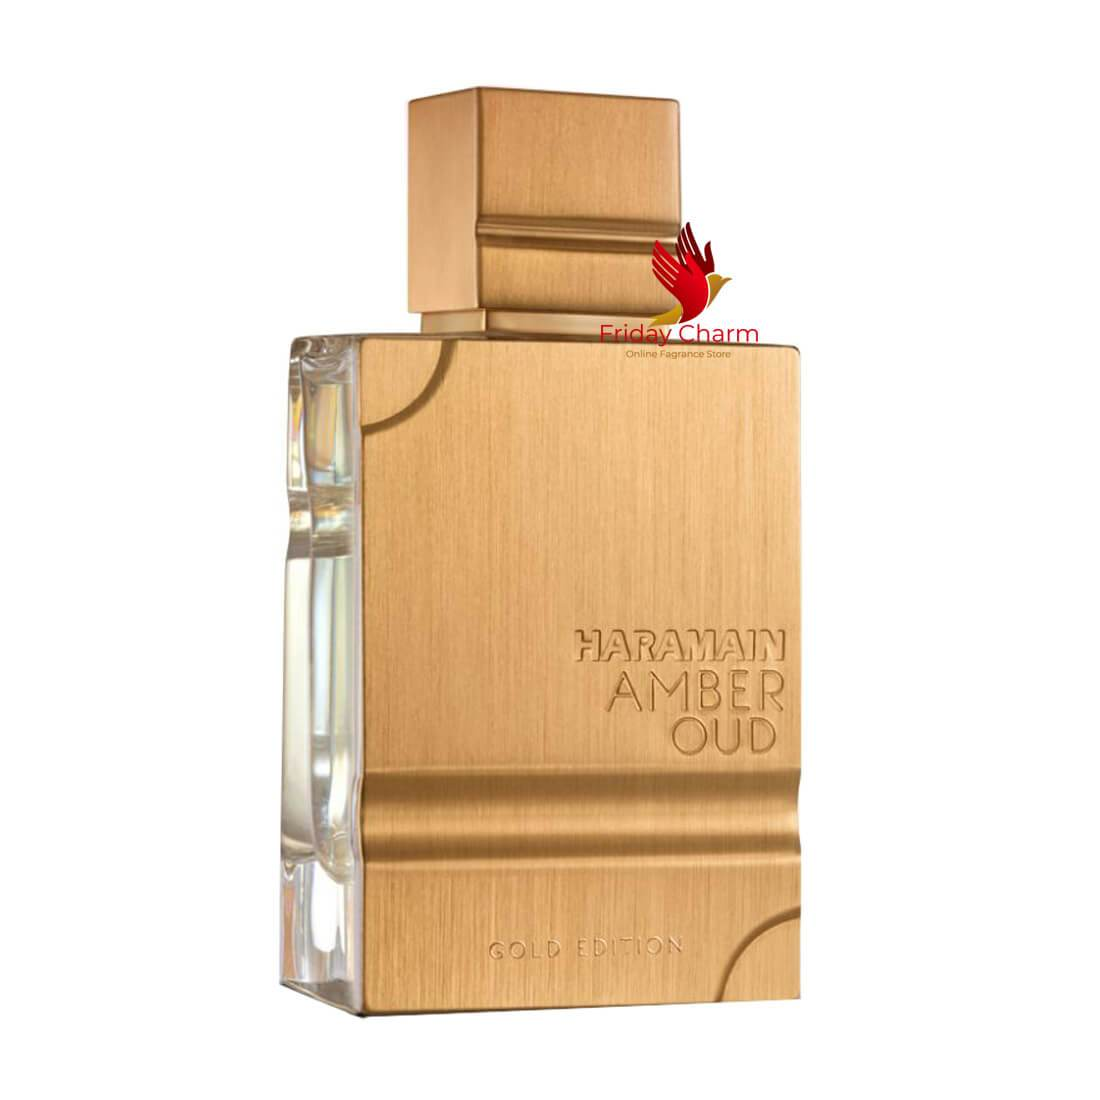 Al Haramain Amber Oud Gold Edition Spray - 60ml